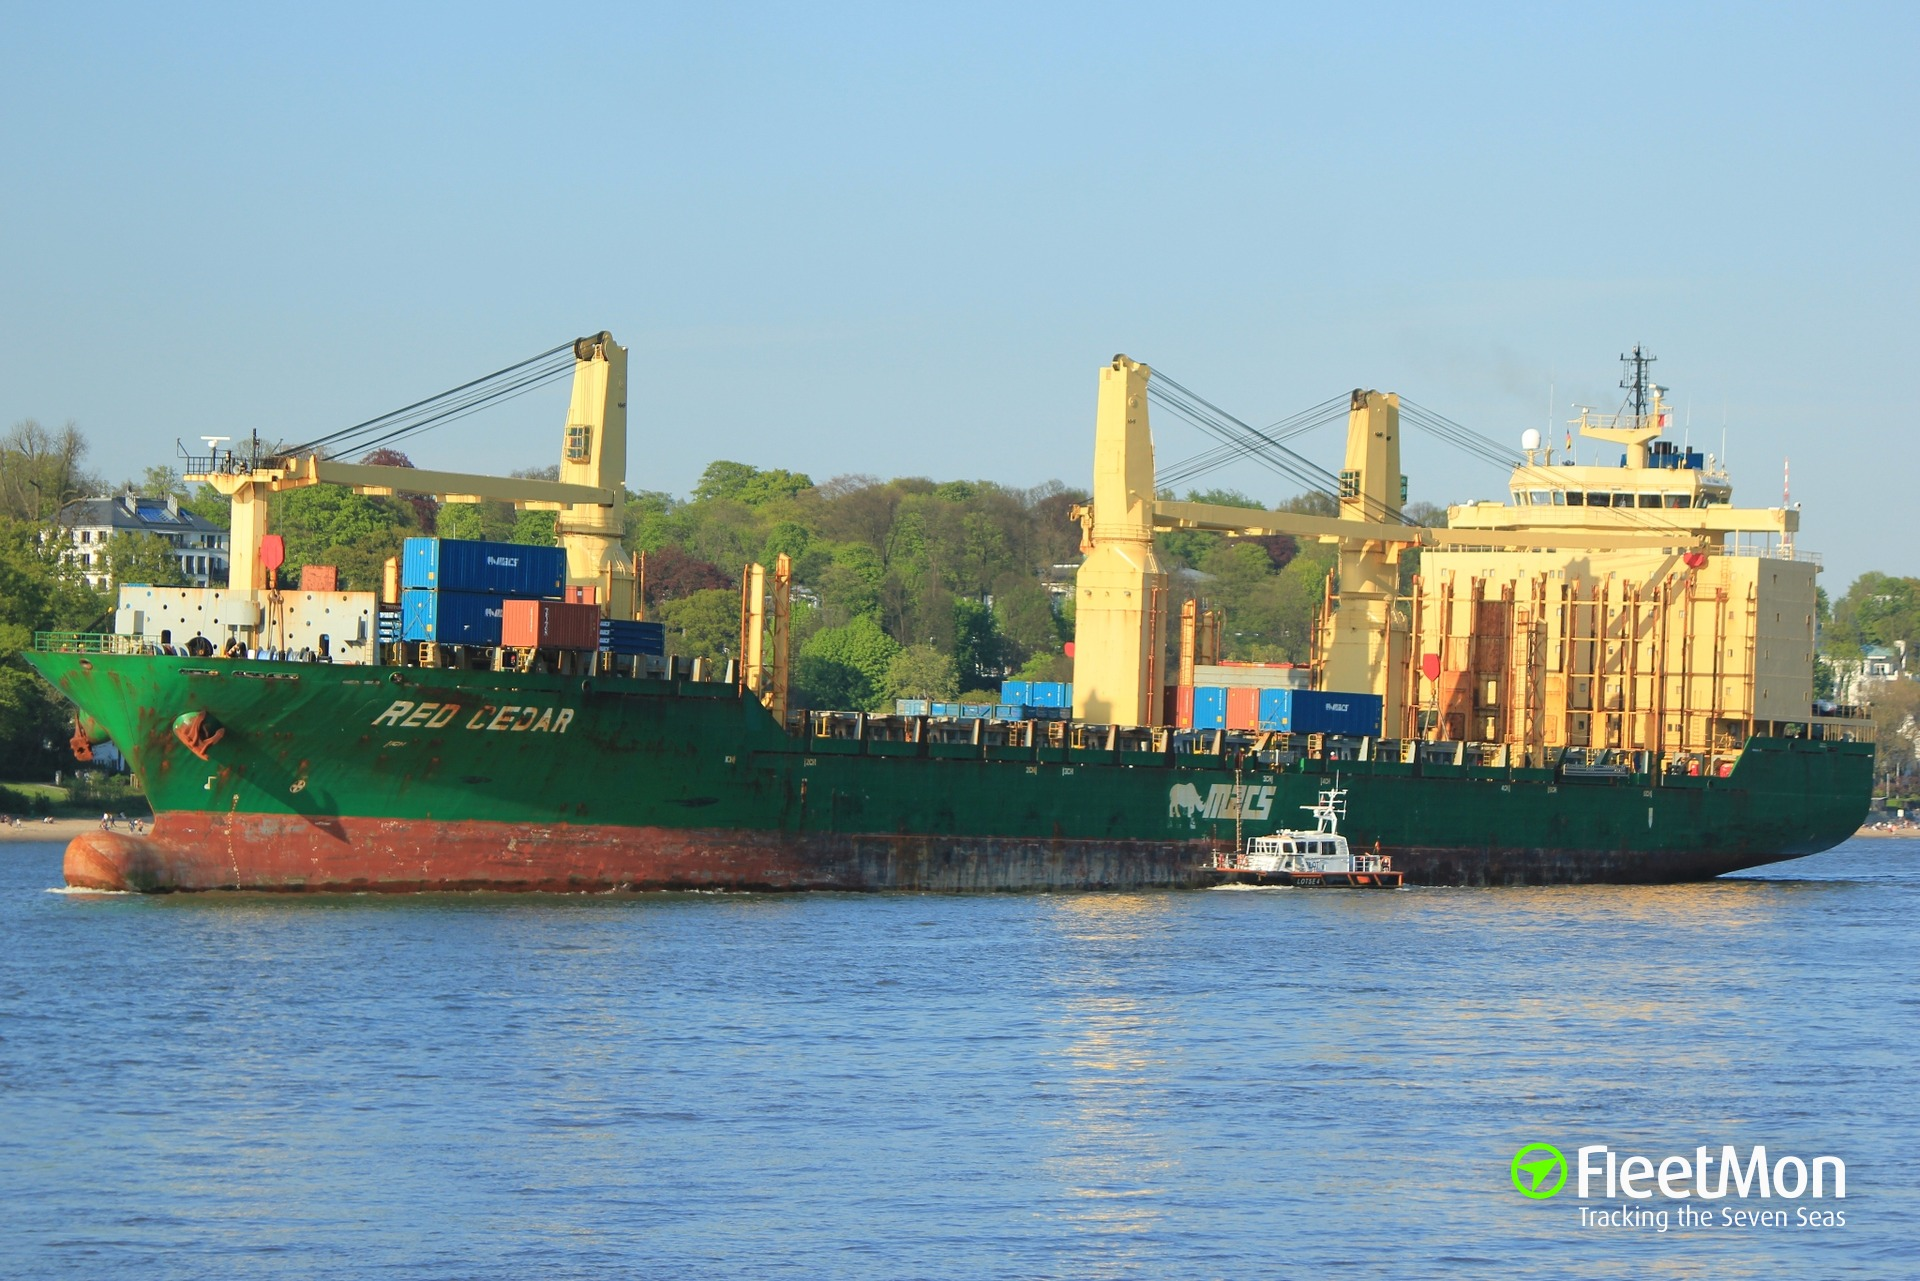 Container ship RED CEDAR lost 15 containers, seems troubled